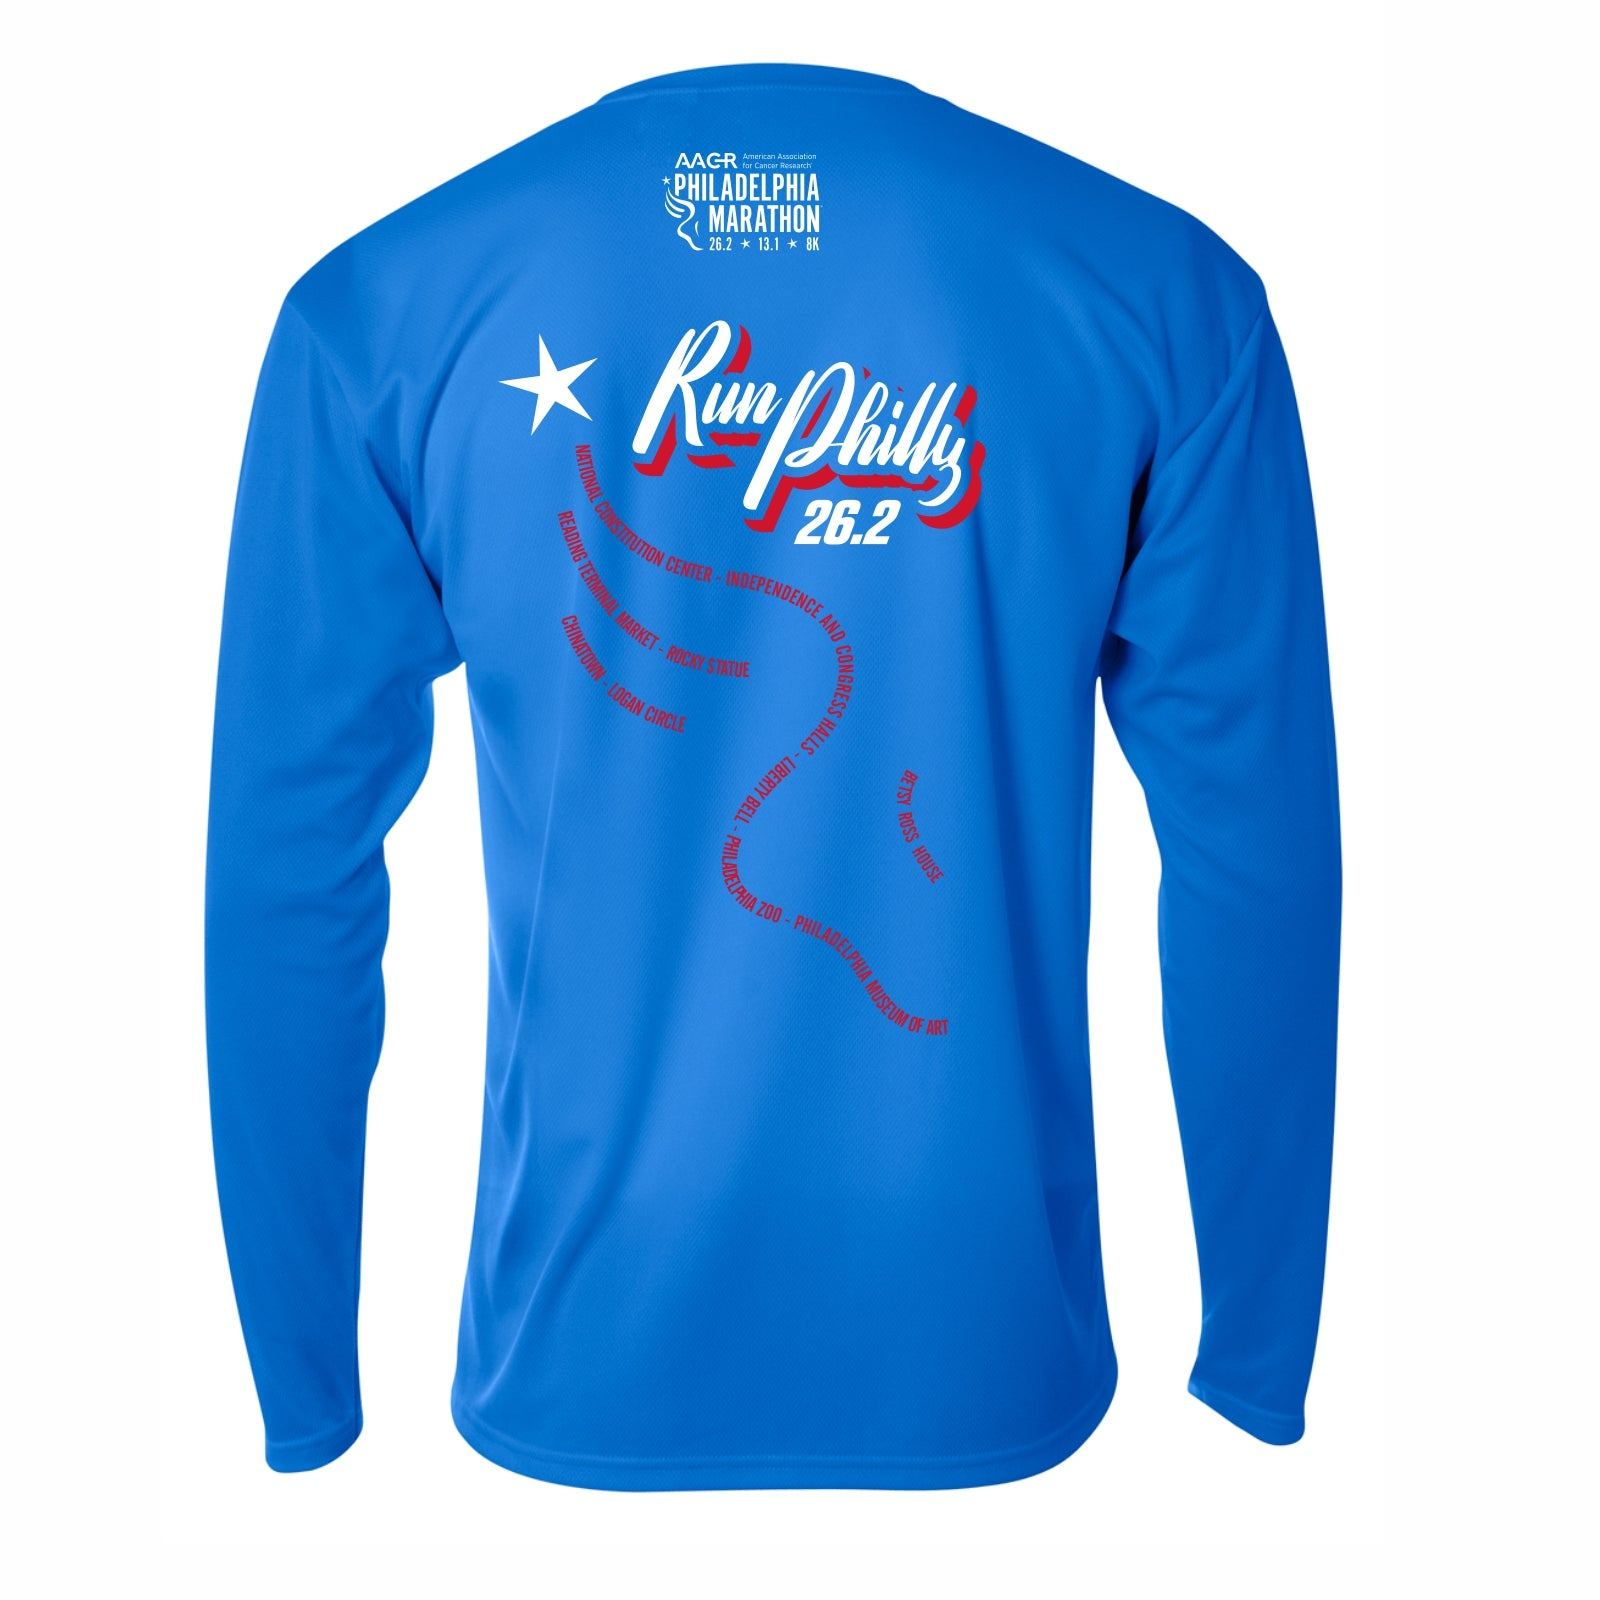 Men's LS Tech Tee -Royal 'AACR 2019 Course Design' - AACR Philadelphia Marathon